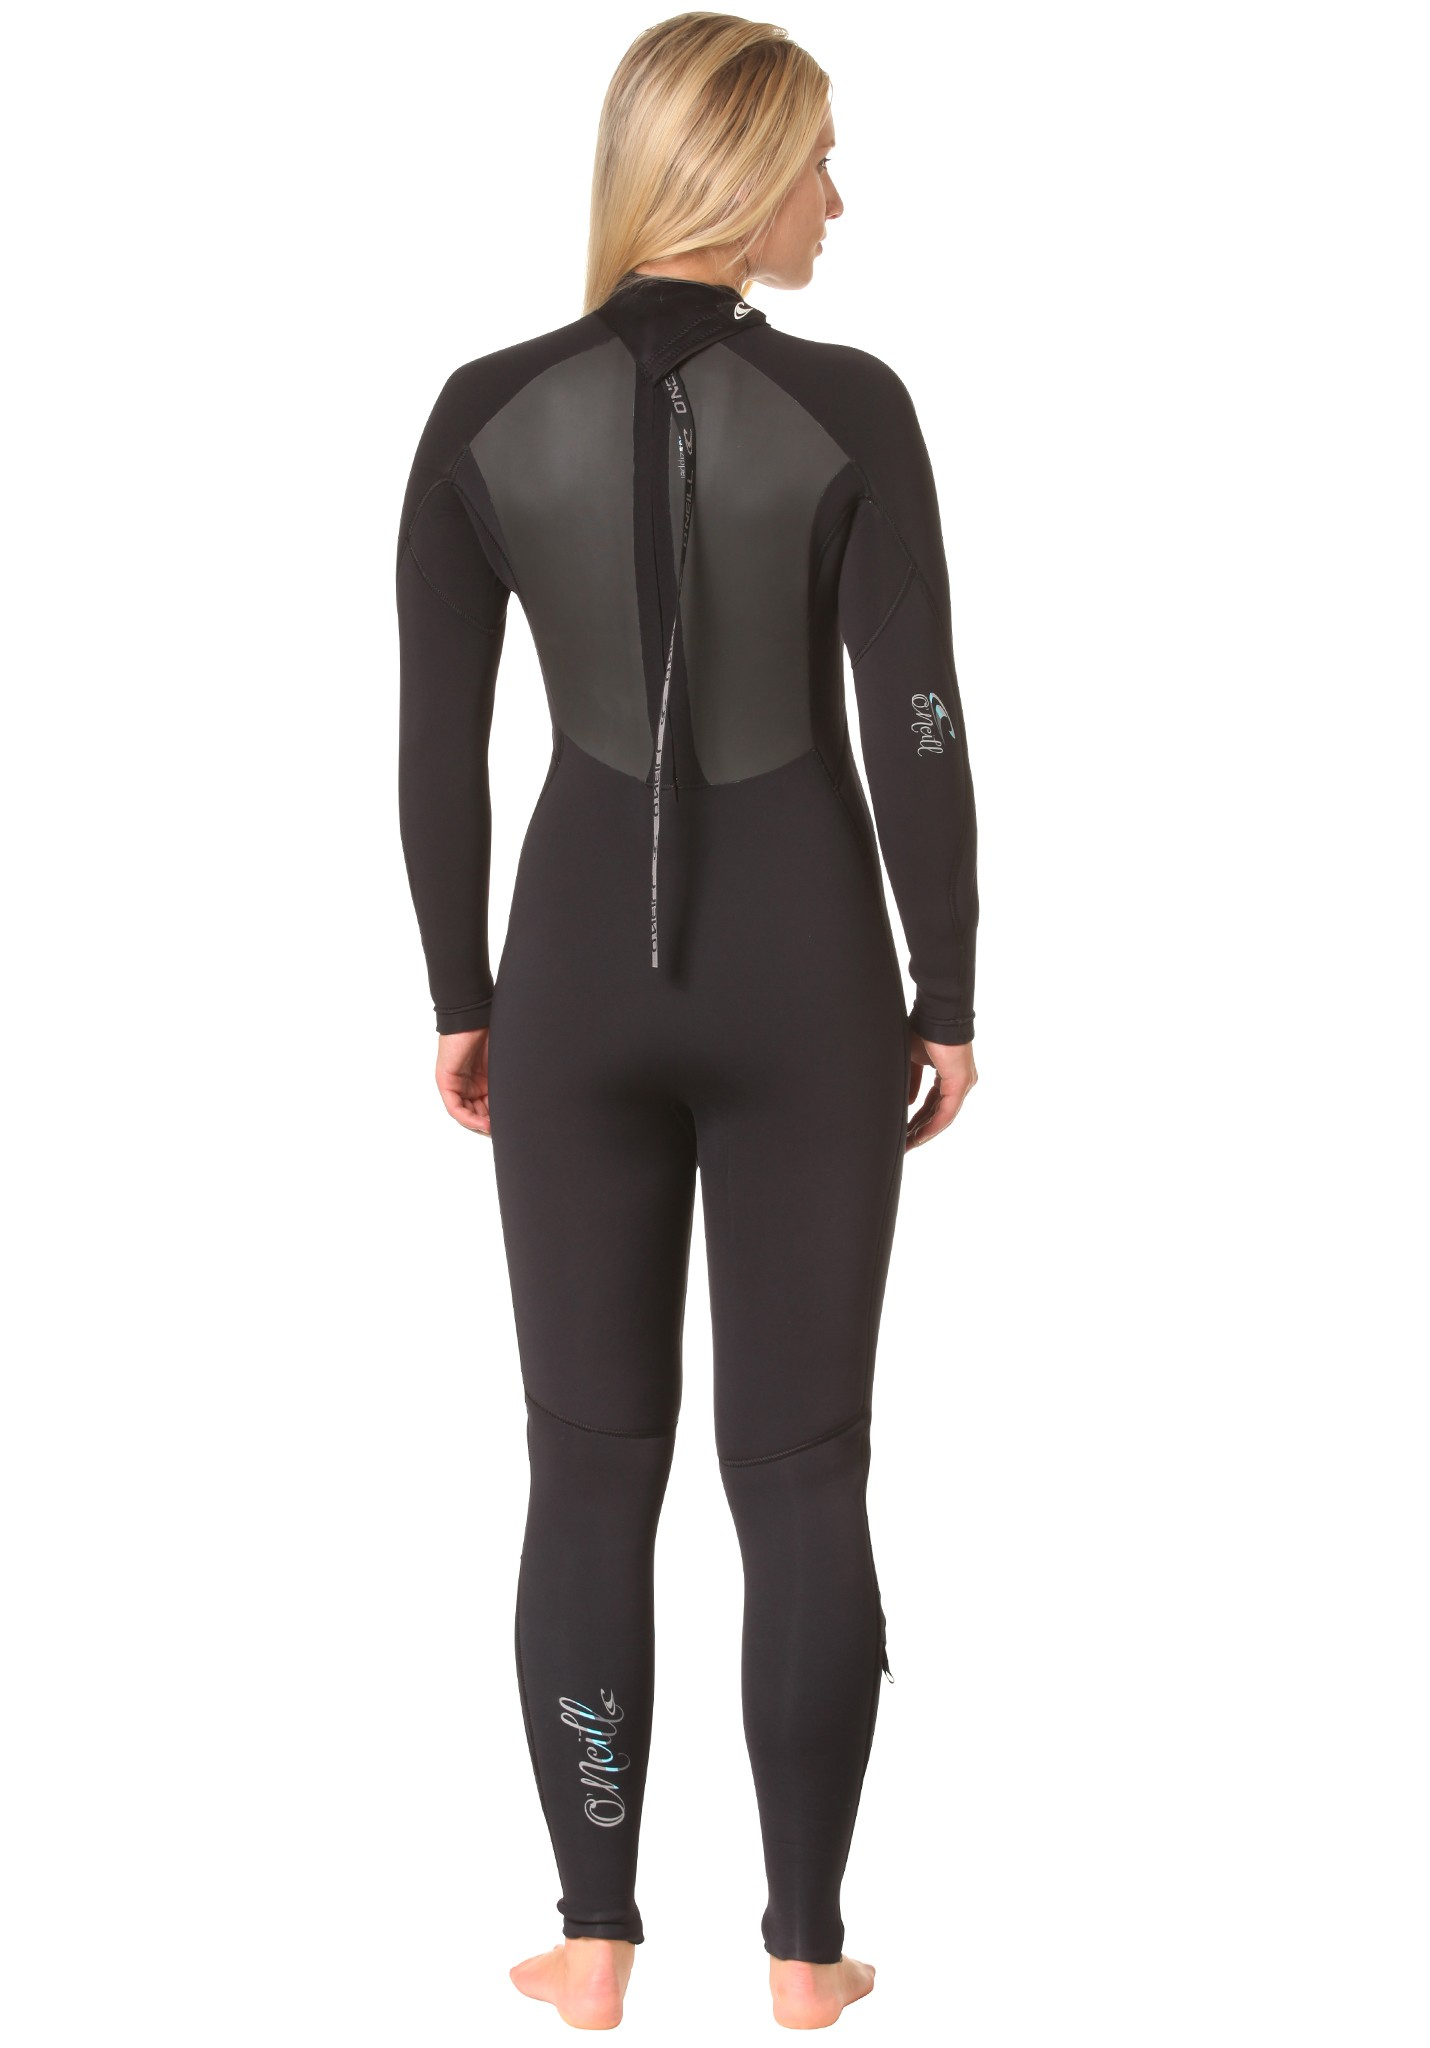 neu oneill wetsuits epic 5 4mm damen neoprenanzug ebay. Black Bedroom Furniture Sets. Home Design Ideas